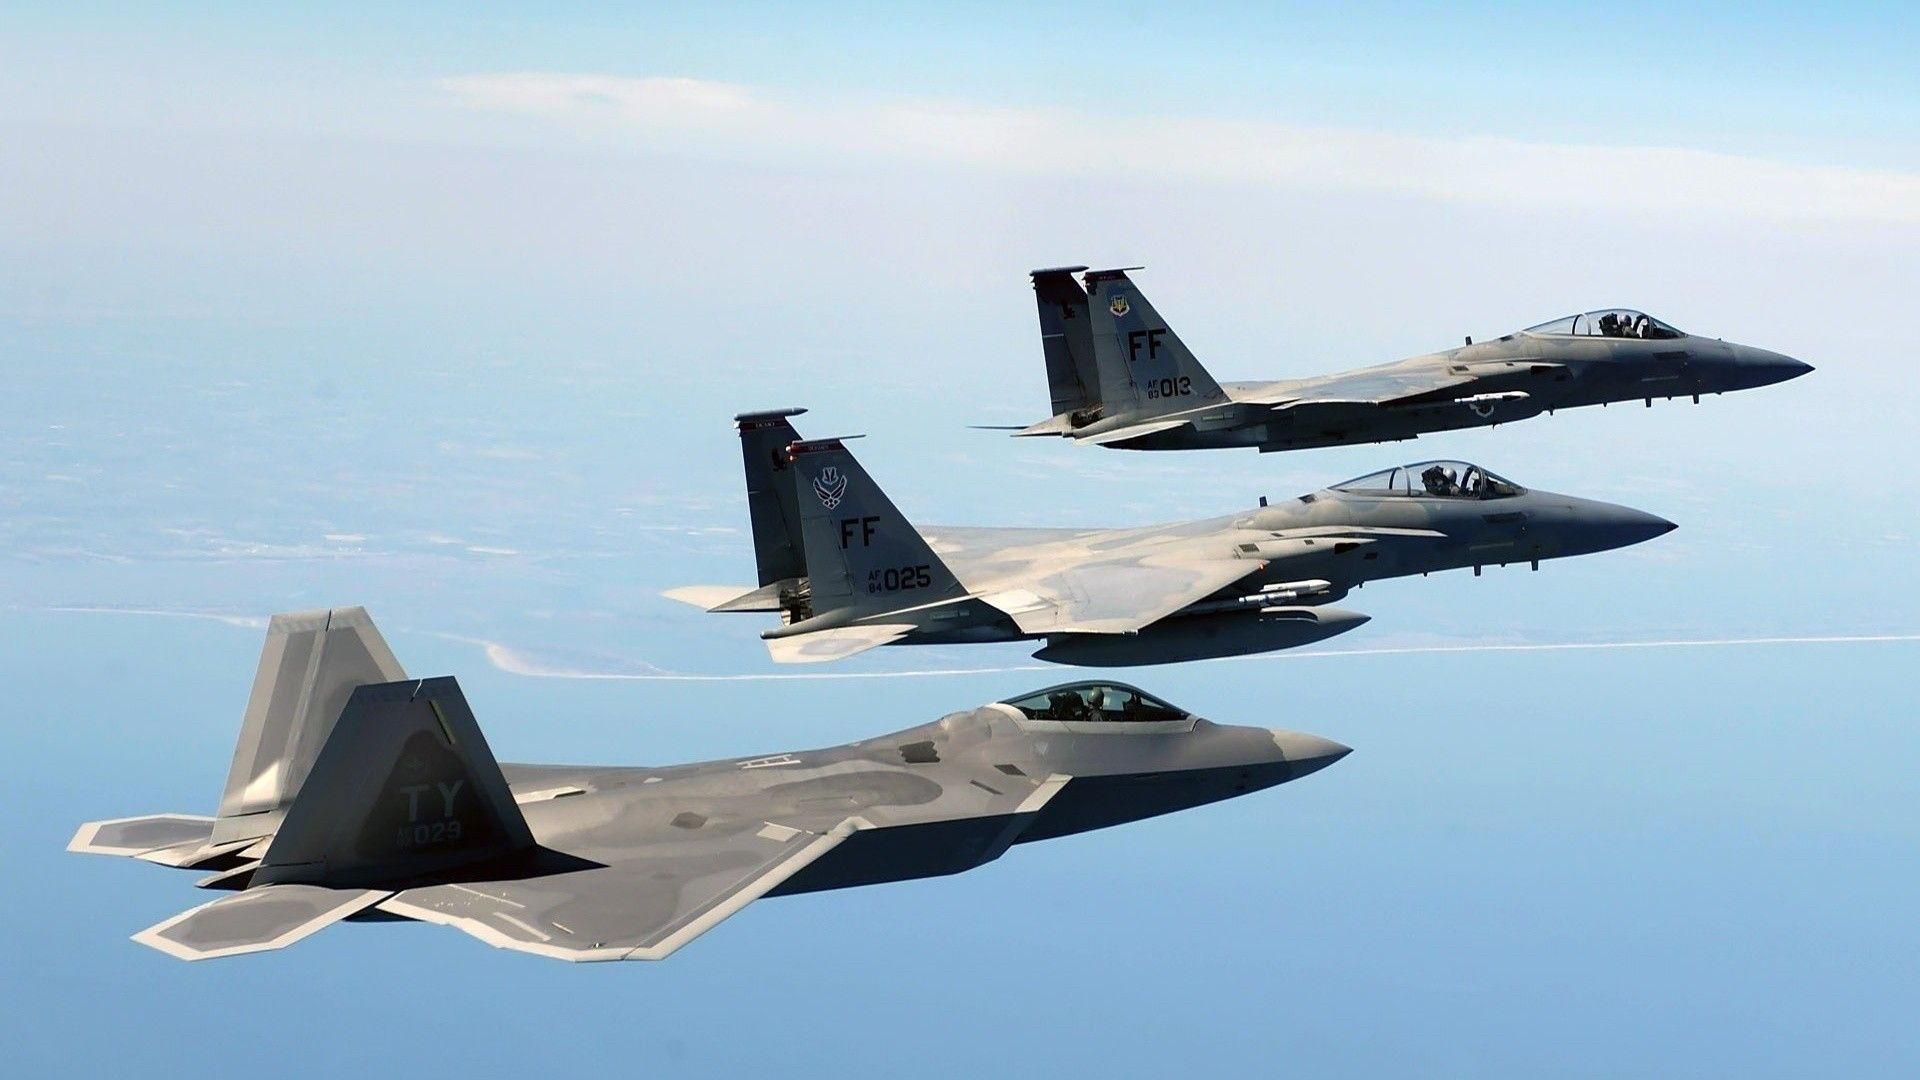 Jet Planes Are Made Up Of Multiple Triangular Shapes And Angles Fighter Jets Aircraft Fighter Planes